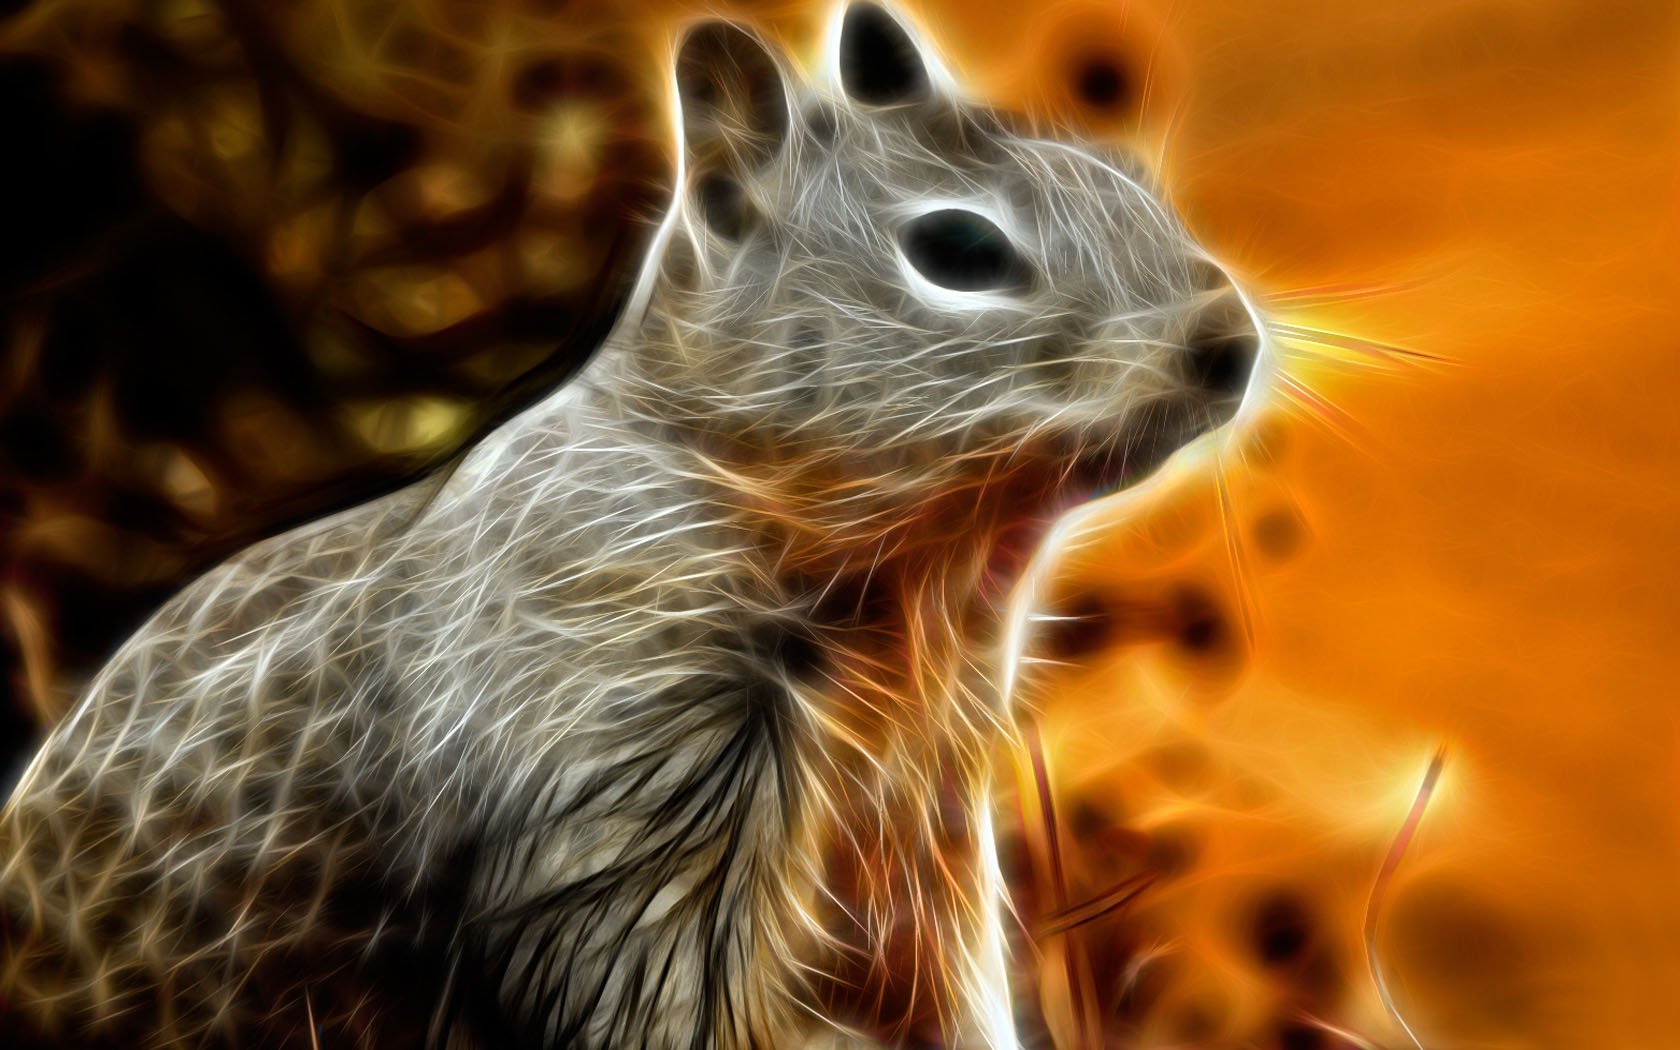 Drawn rodent wallpaper Animal wallpapers pictures and wallpapers